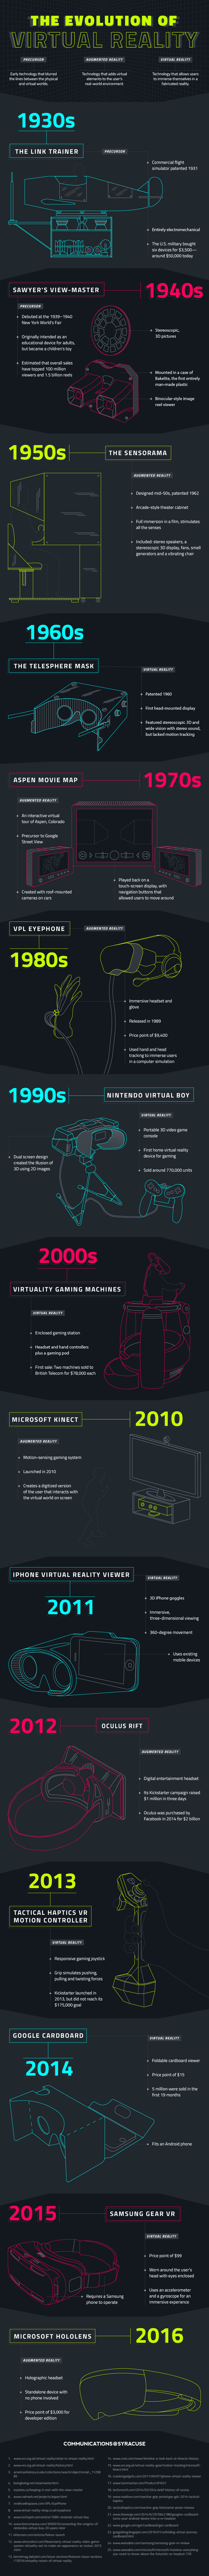 Creating Immersive, Alternate Worlds: The Evolution of Virtual Reality - Infographic